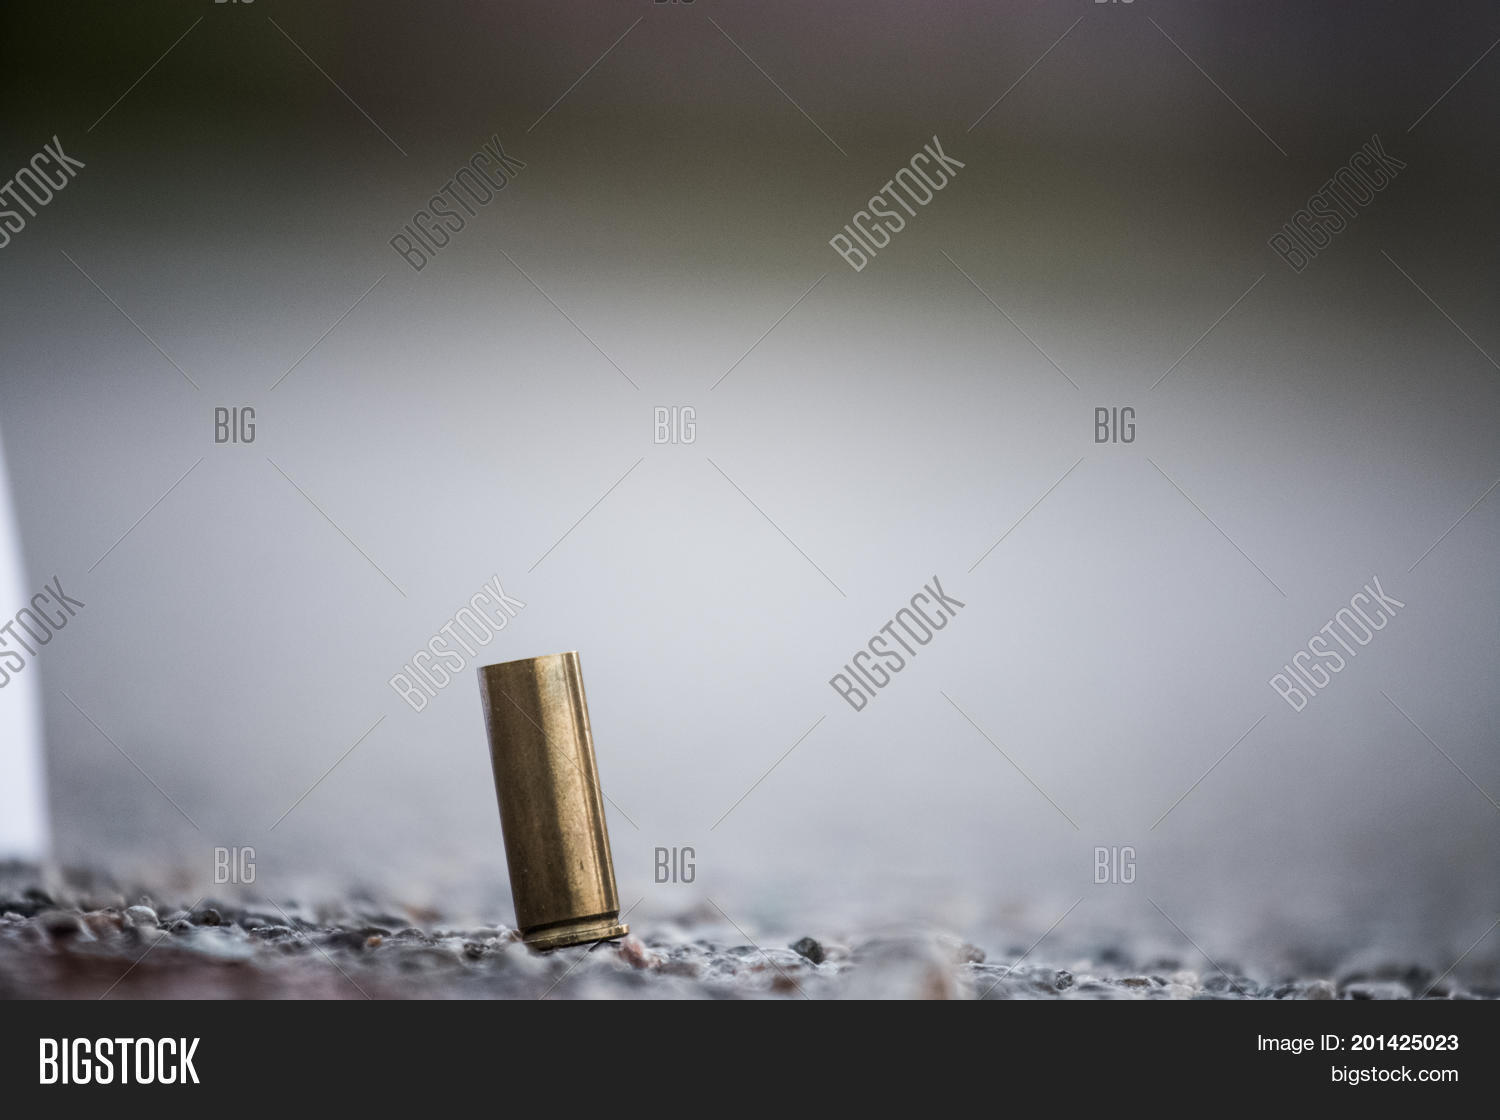 Bullet Shell On Ground Image & Photo (Free Trial)   Bigstock